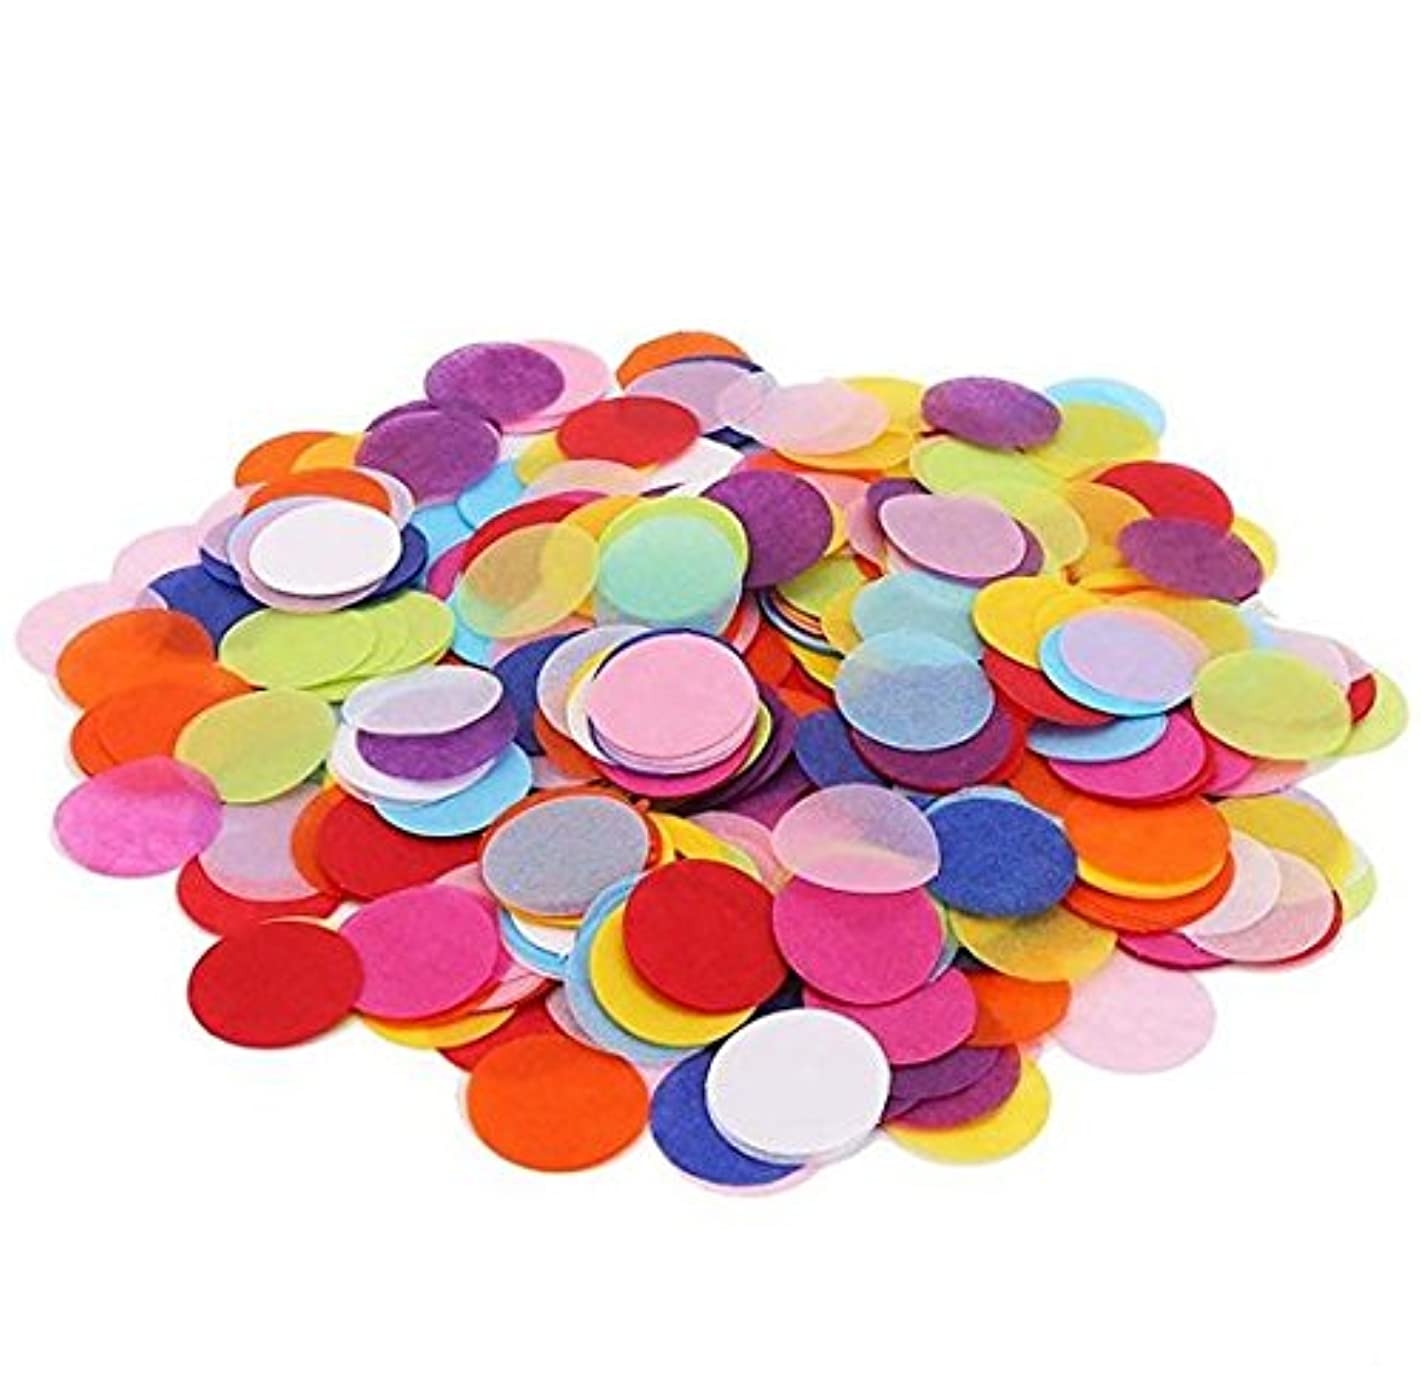 VNDEFUL 1 inch Multicolor Circle Paper Confetti for Wedding, Easter and Birthday Party Decorations, 1000 Pieces